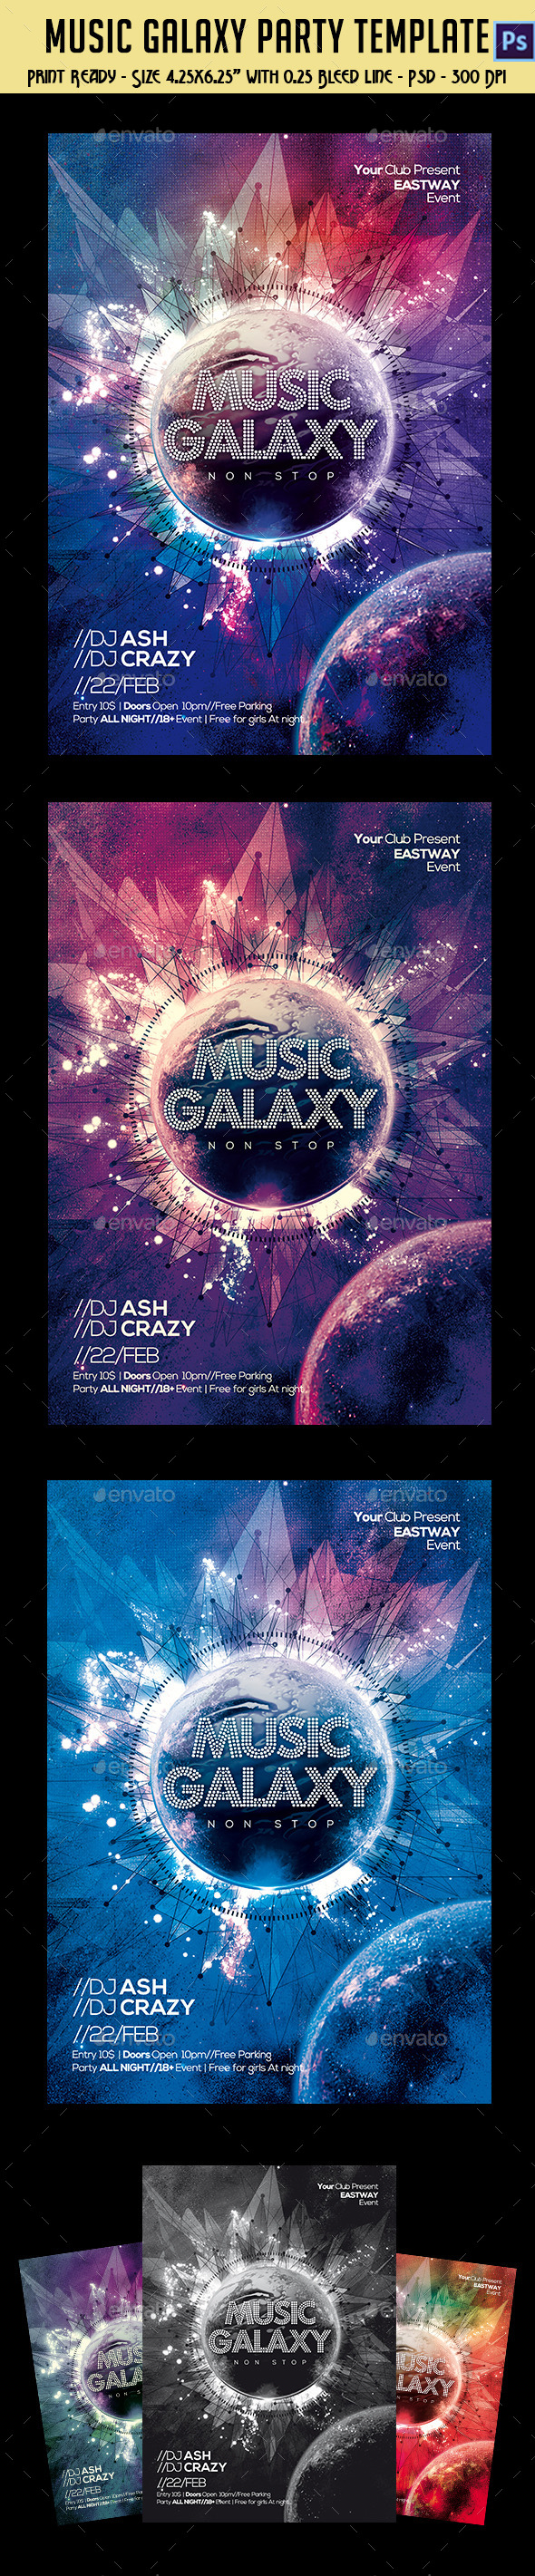 Music Galaxy Party Template - Clubs & Parties Events